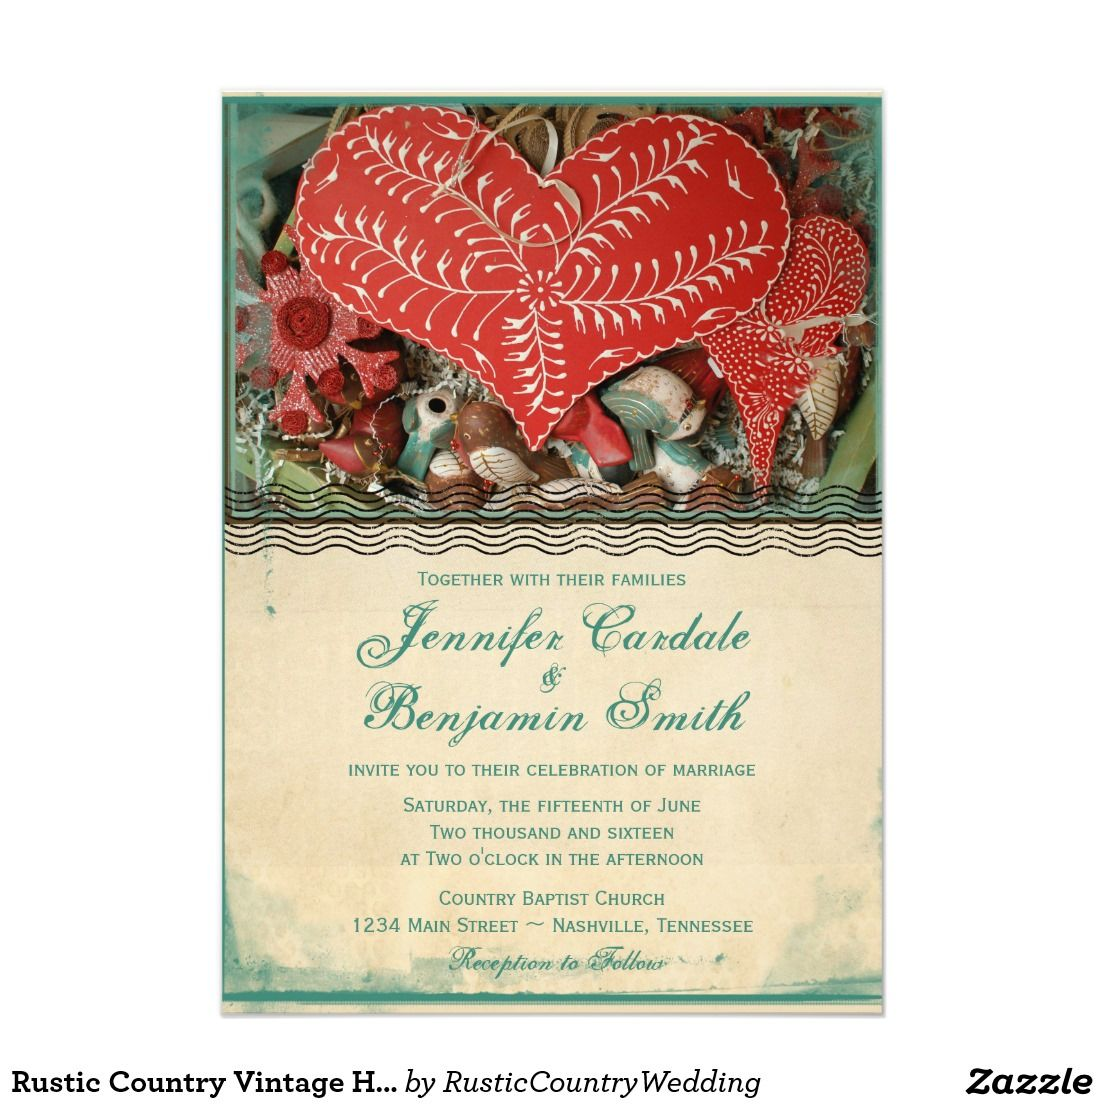 Rustic Country Vintage Heart Wedding Invitations | Heart wedding ...